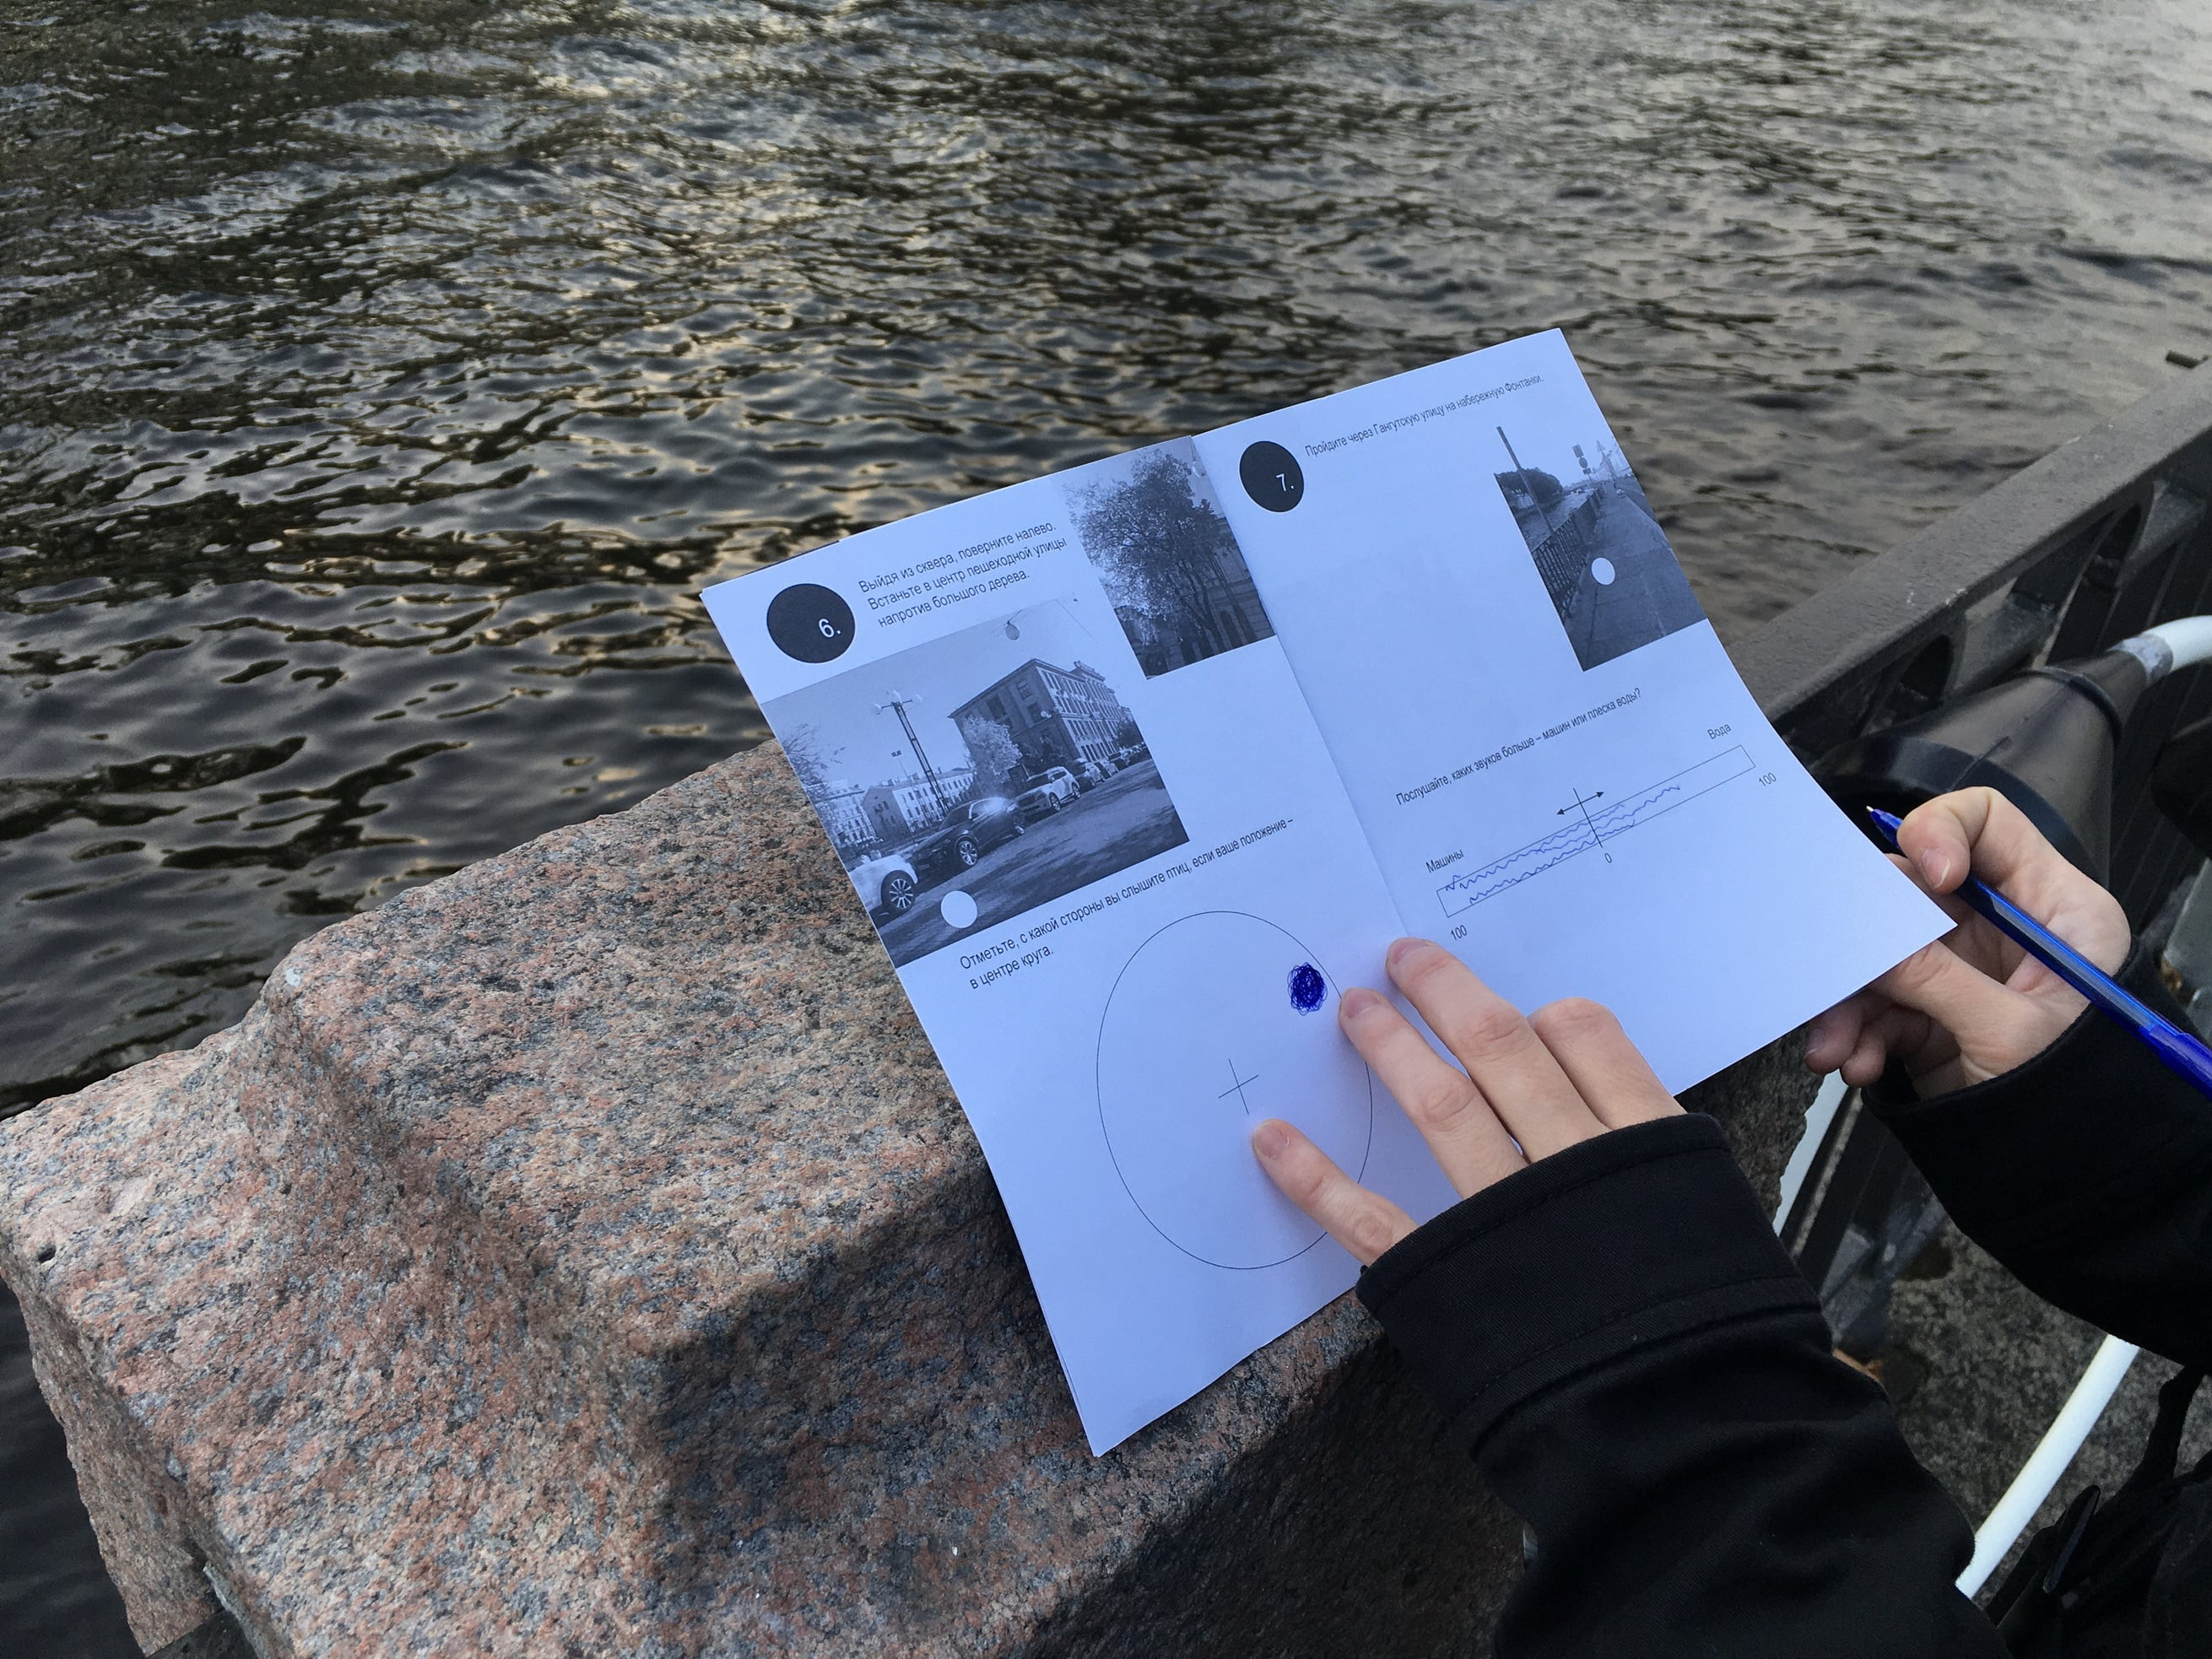 Zine guide for documenting the soundscape. For Waterphone project, 2020